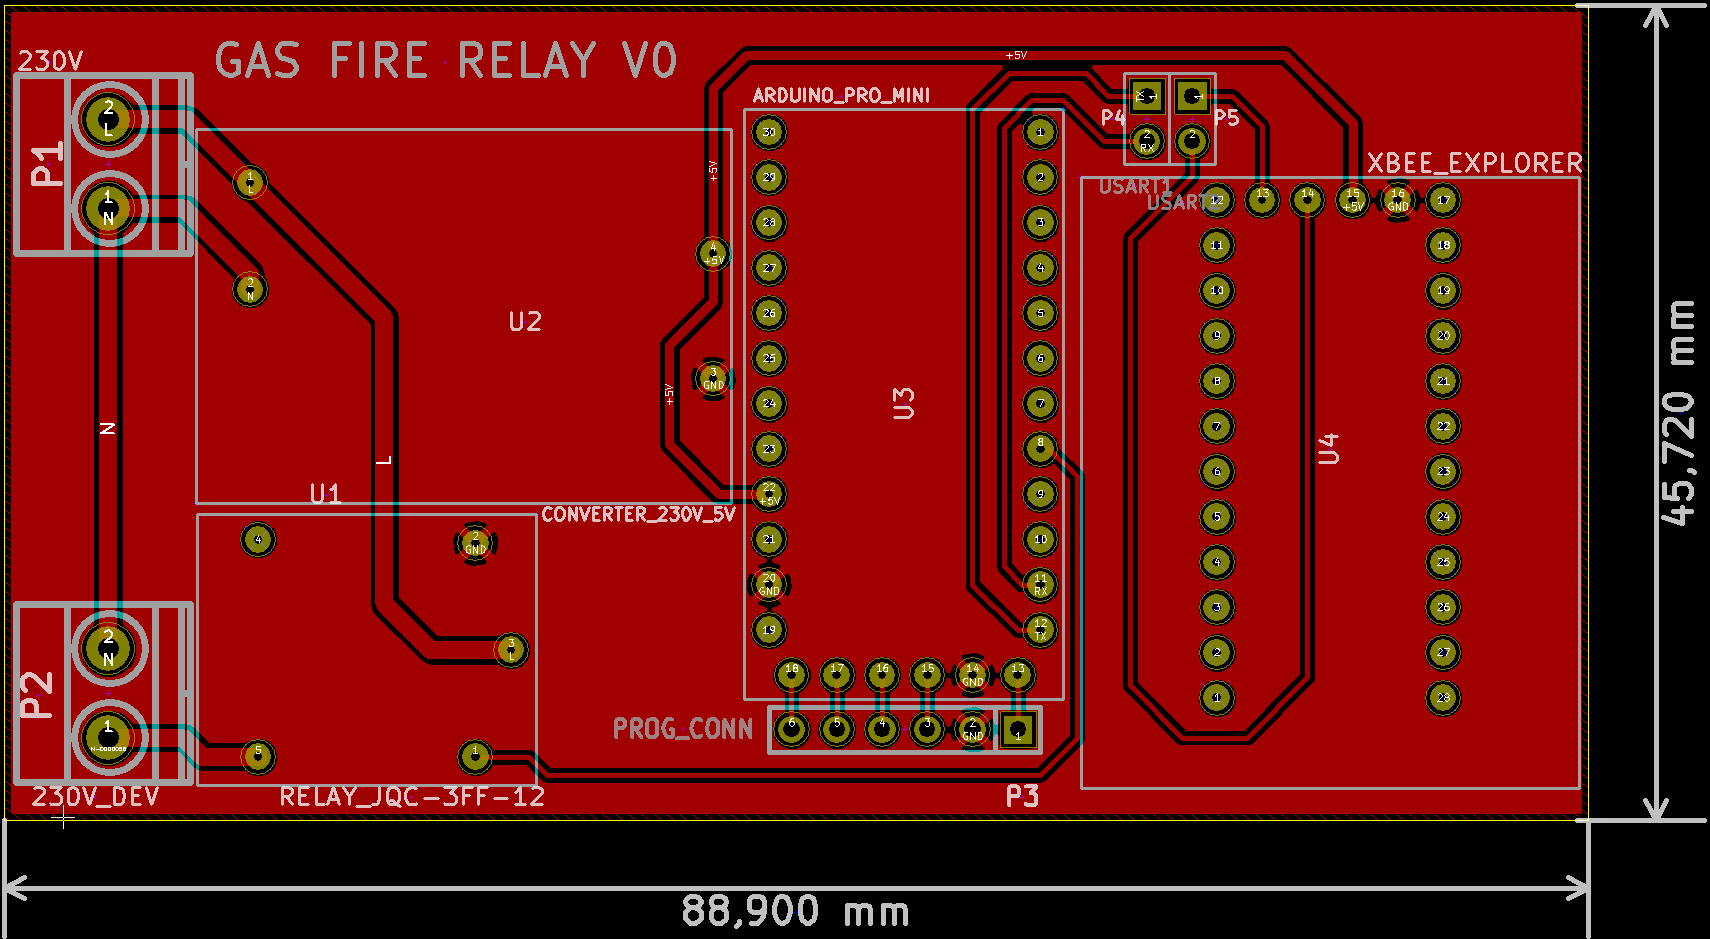 Gas fire relay v0 png plto5i8wvp